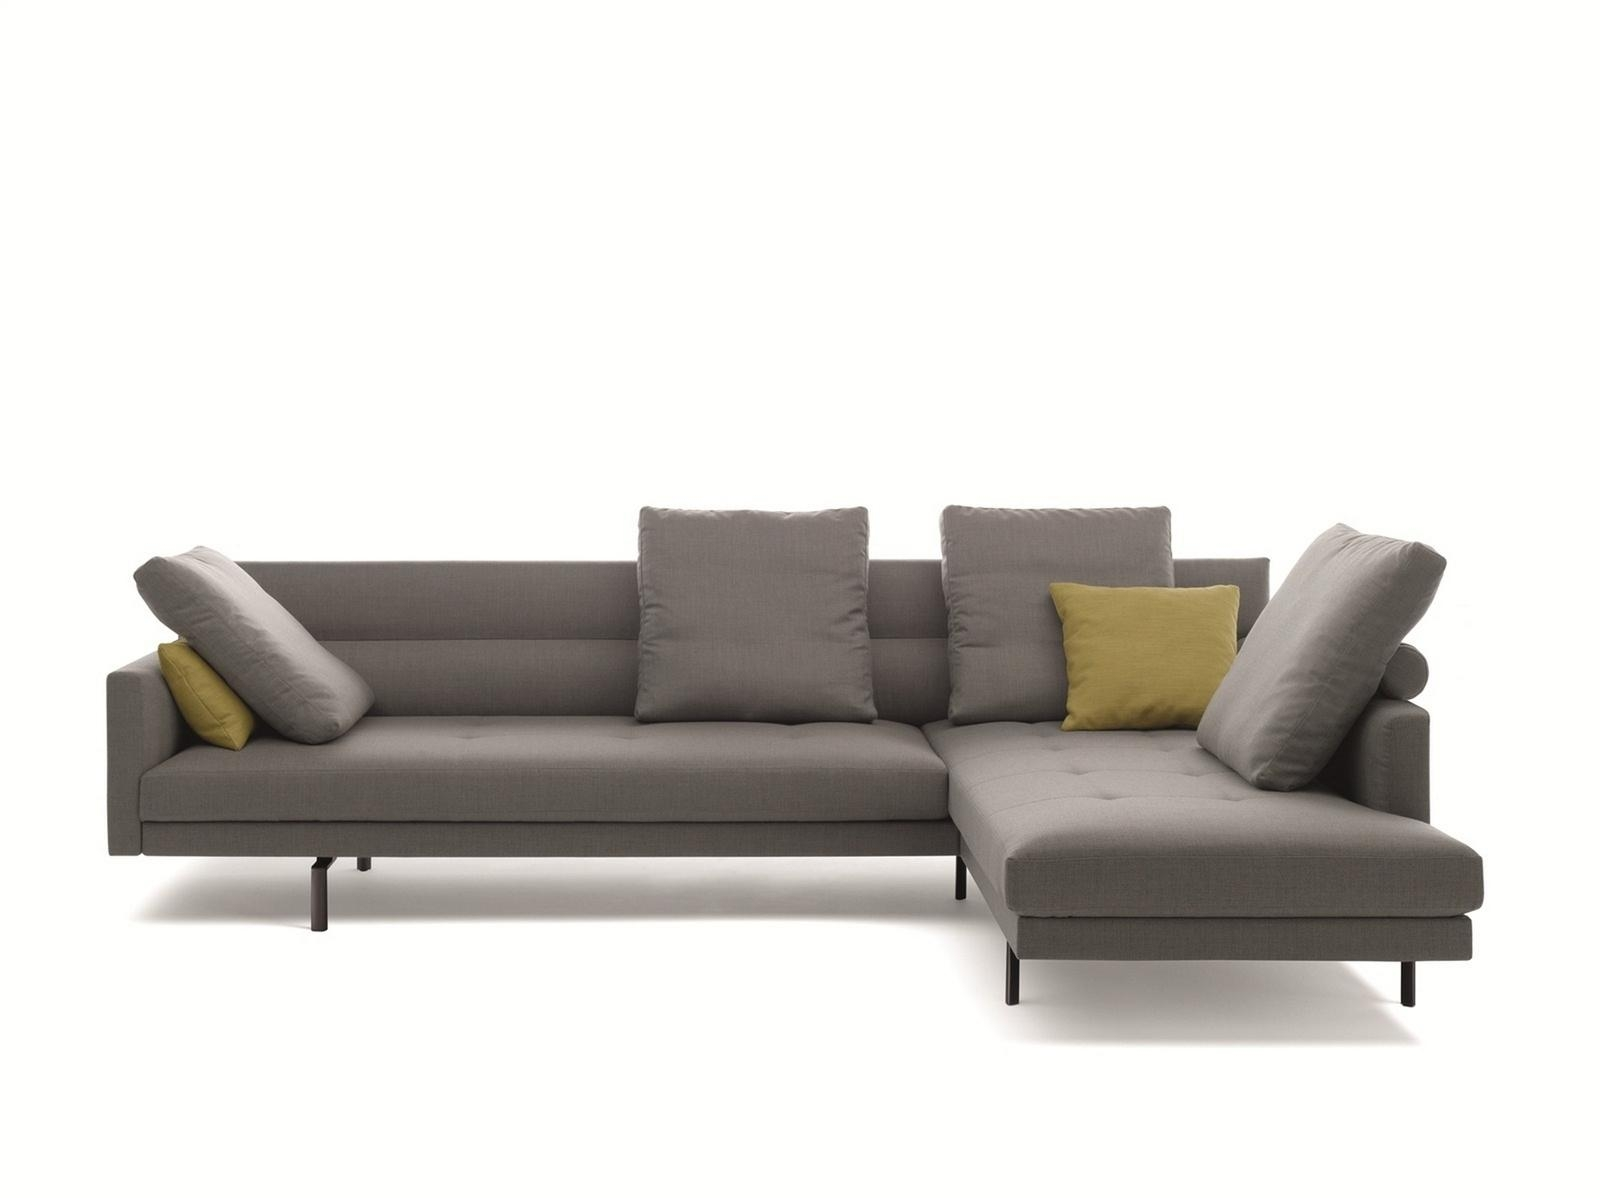 Amazing Walter Knoll Sofa With Leather Sofa Jaan Living Sofa Inside Knoll Sofas (Photo 6 of 20)